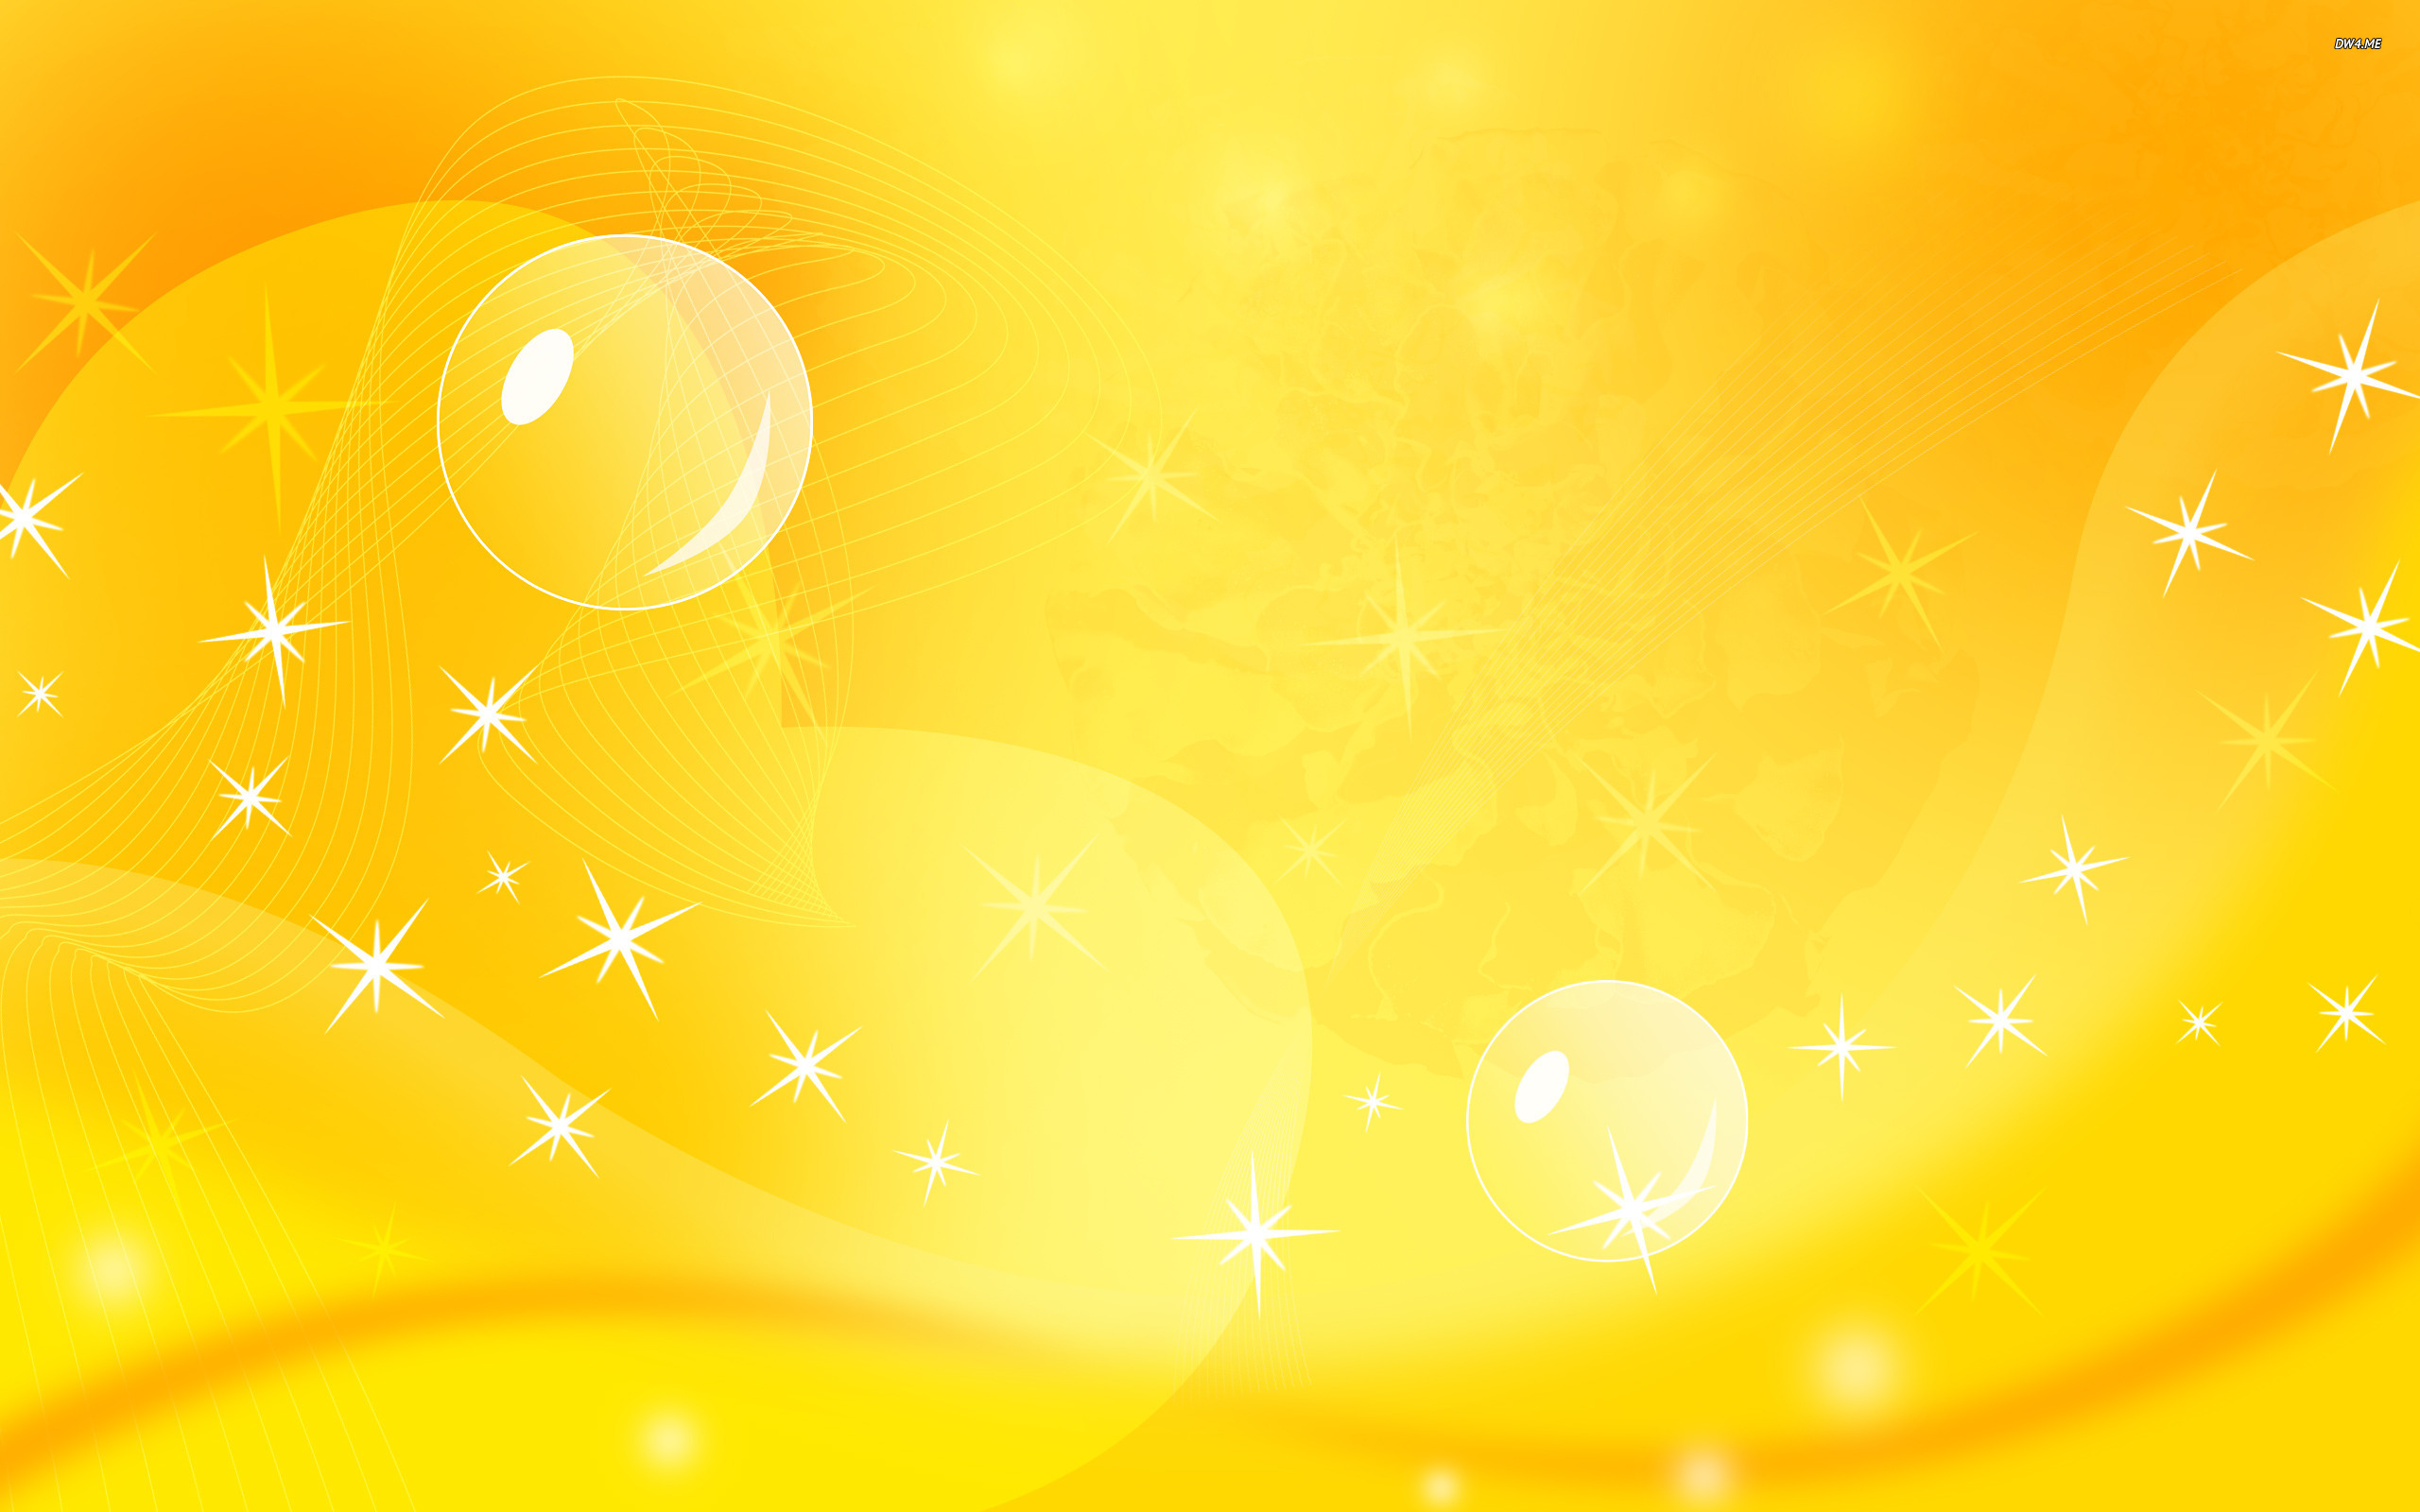 Yellow Images Yellow Wallpapers Hd Wallpaper And Background Photos